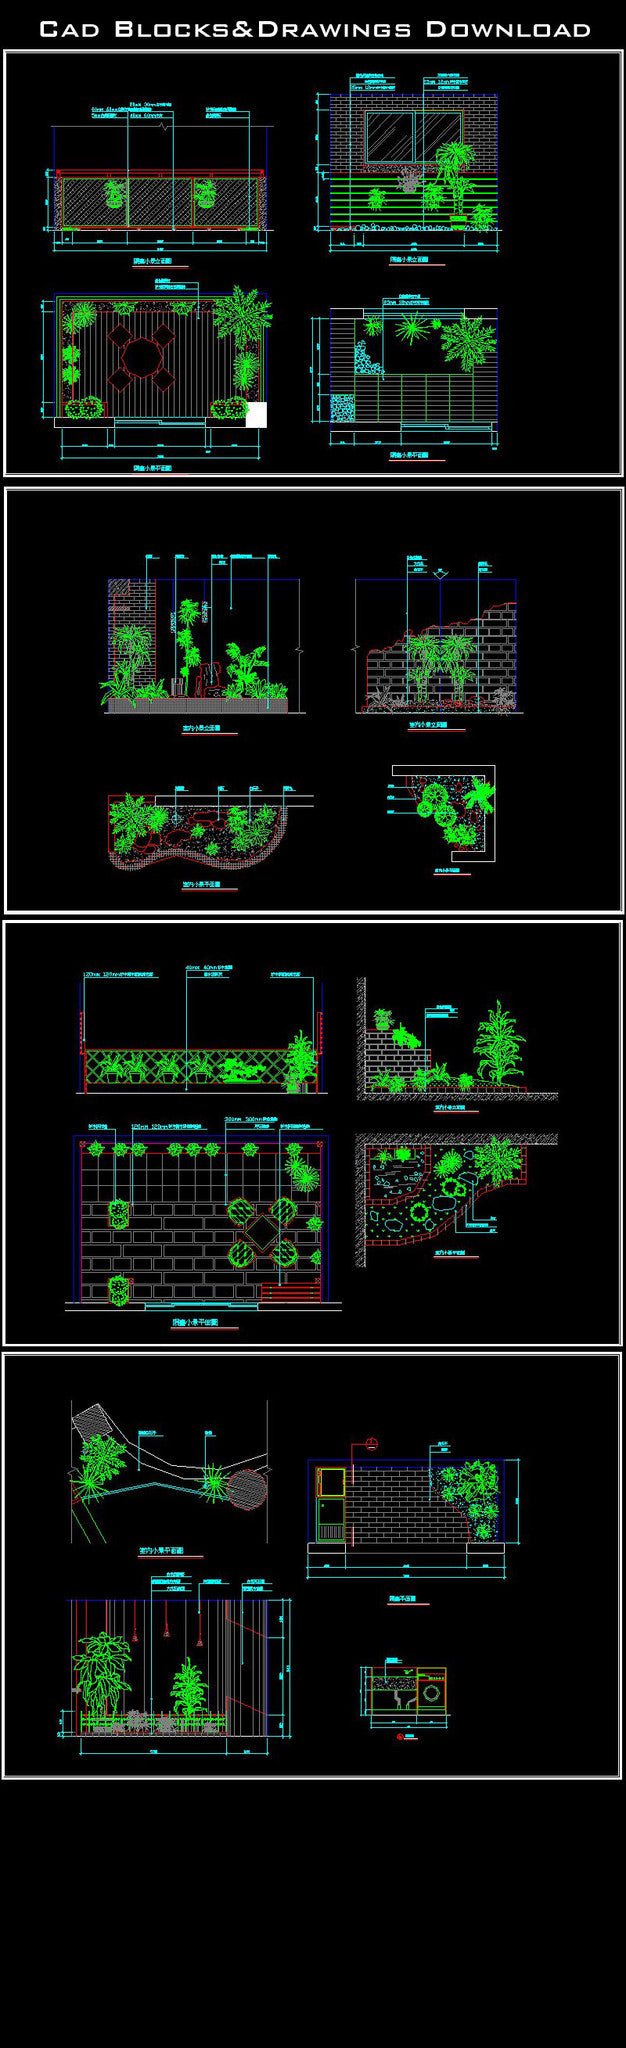 Landscape Design - CAD Design | Free CAD Blocks,Drawings ...